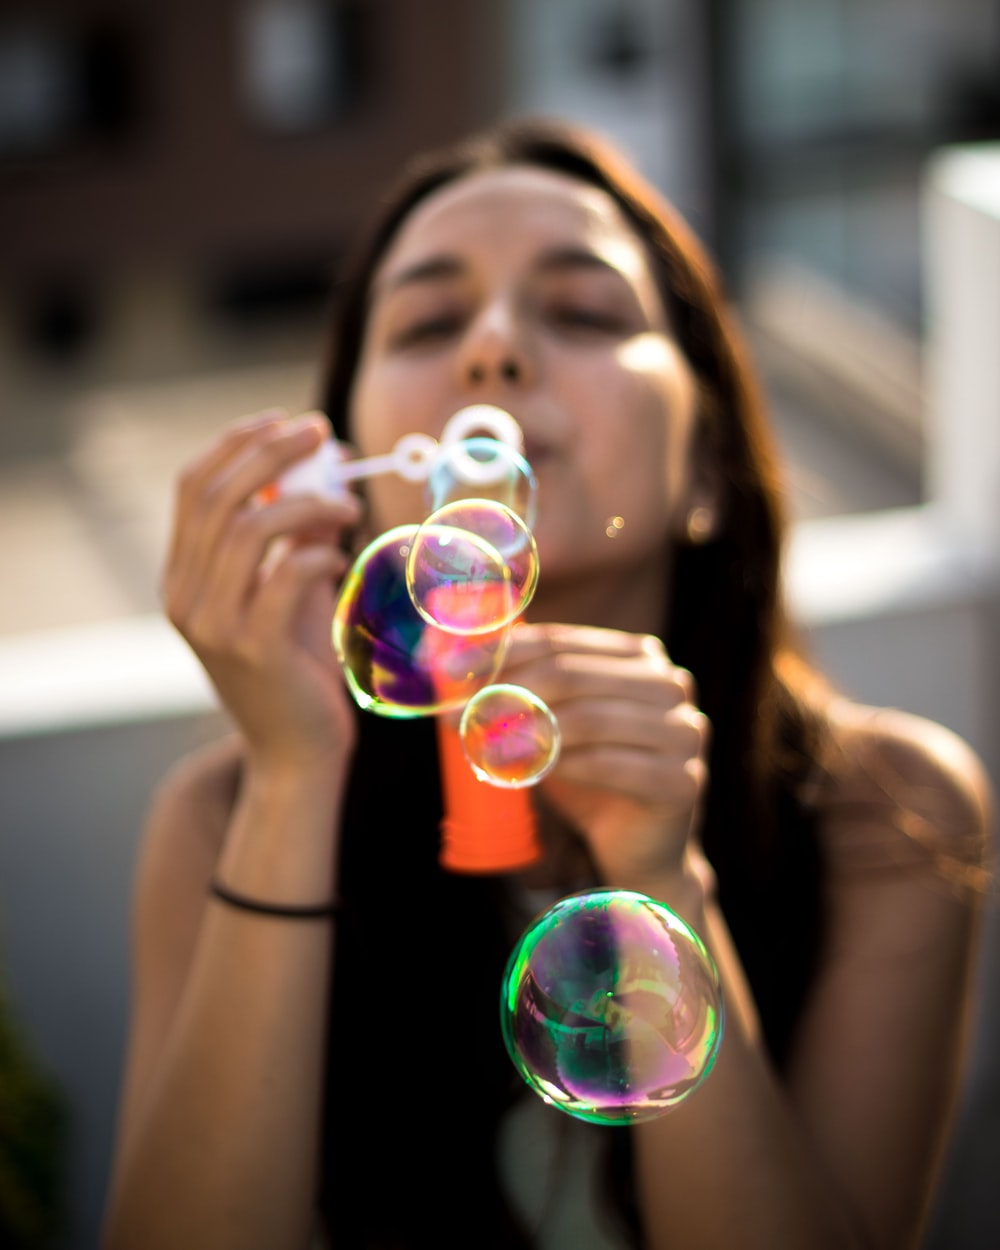 woman blowing bubbles during daytime